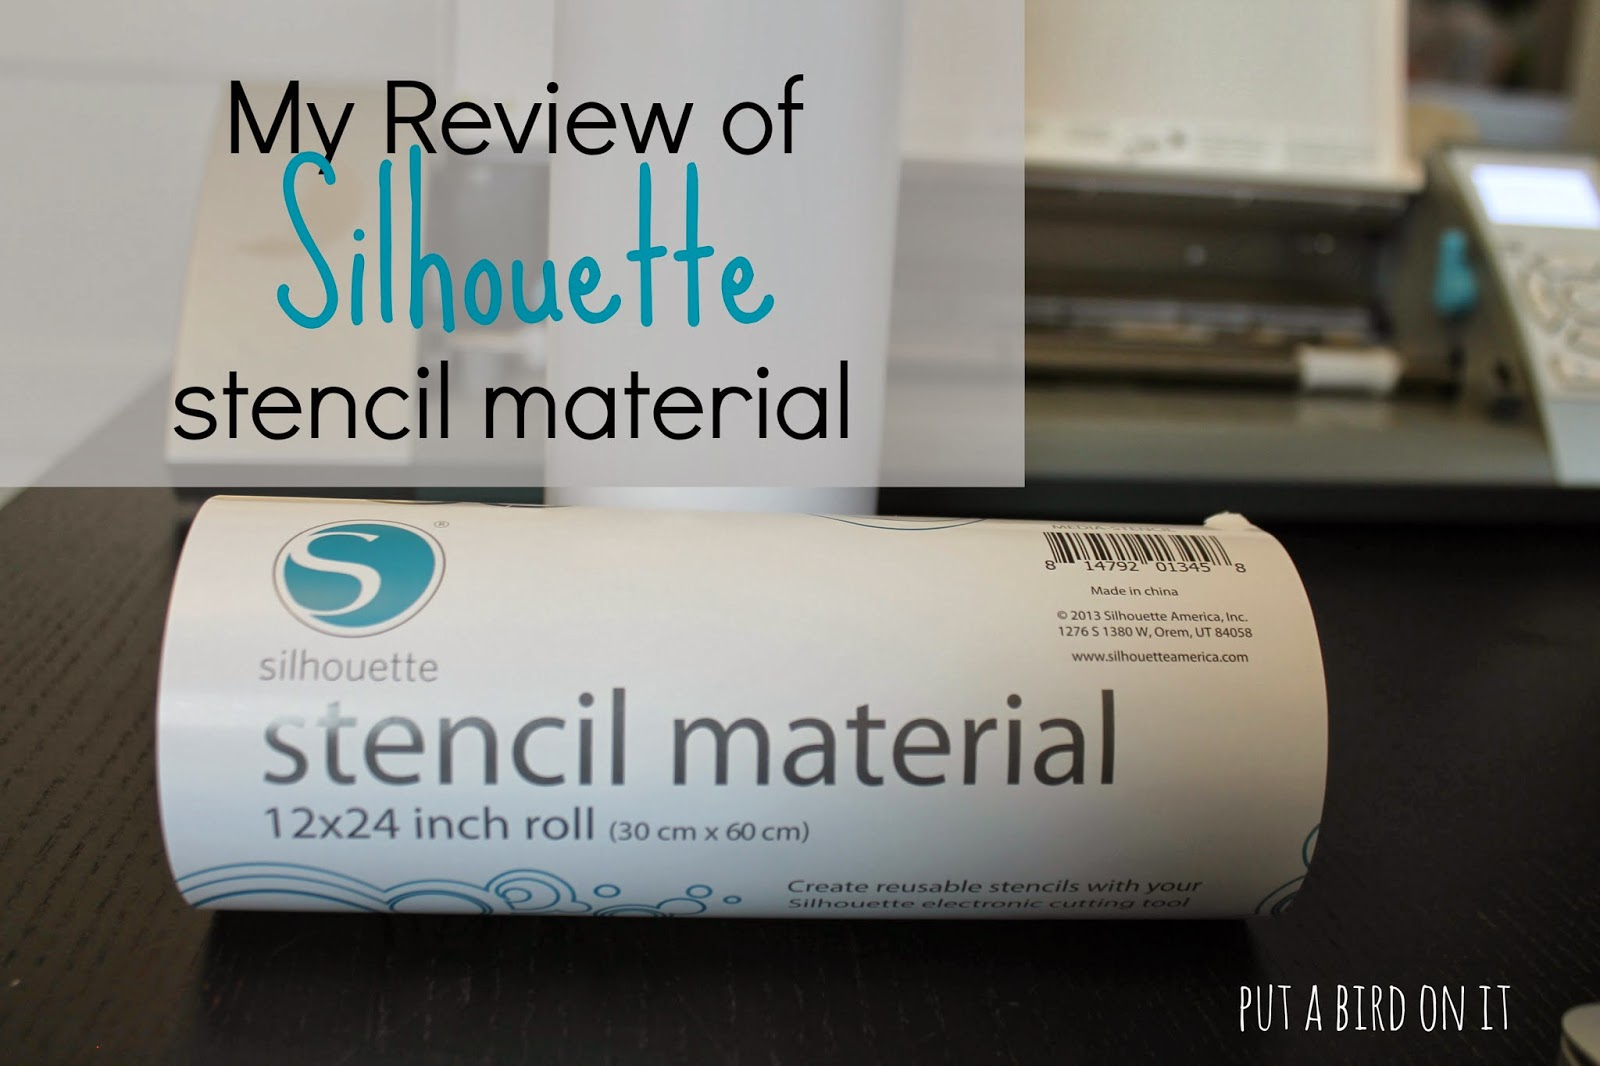 Put A Bird On It: My Review of Silhouette Stencil Material